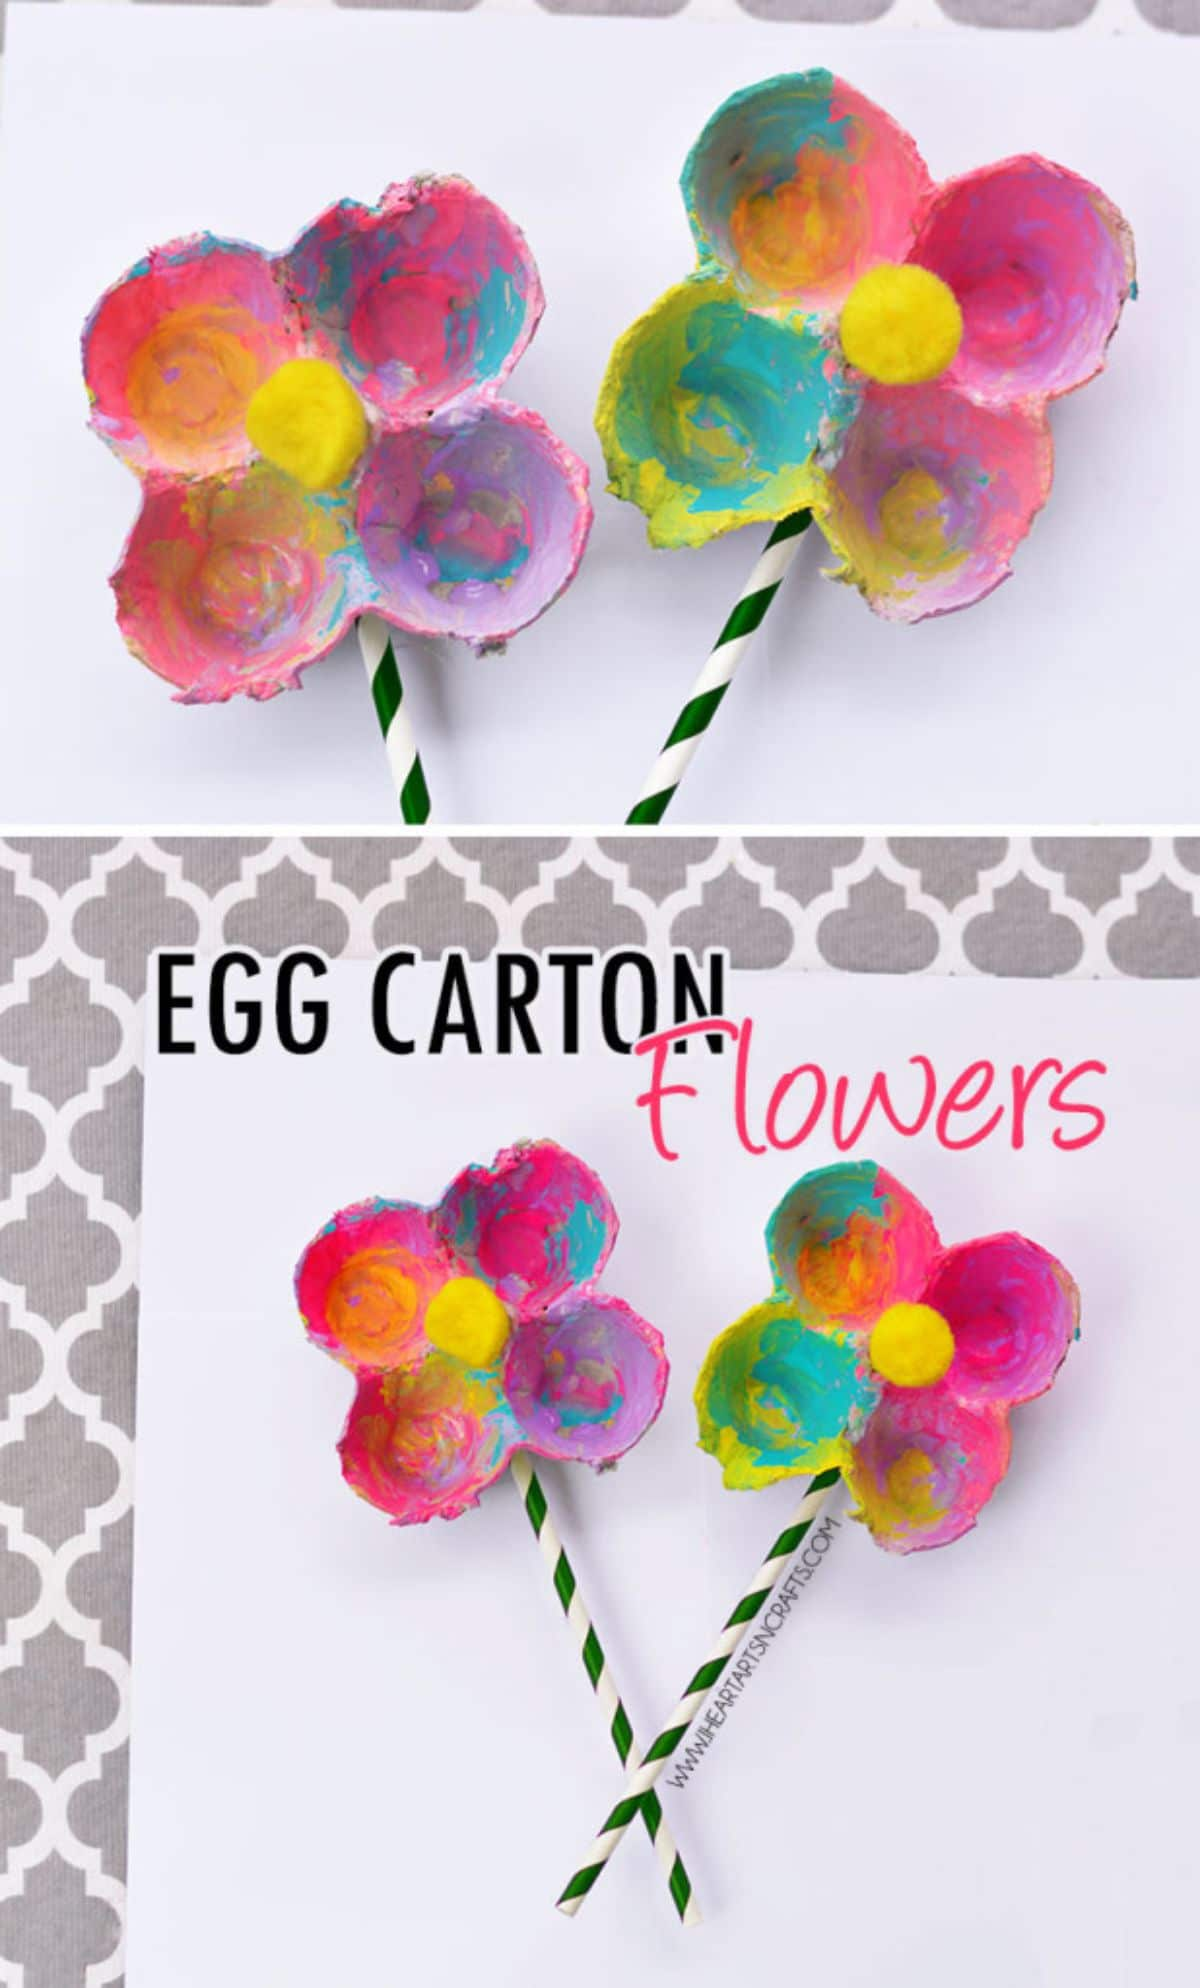 Flowers made out of 4 egg carton dips are painted and stuck onto striped pipe cleaners